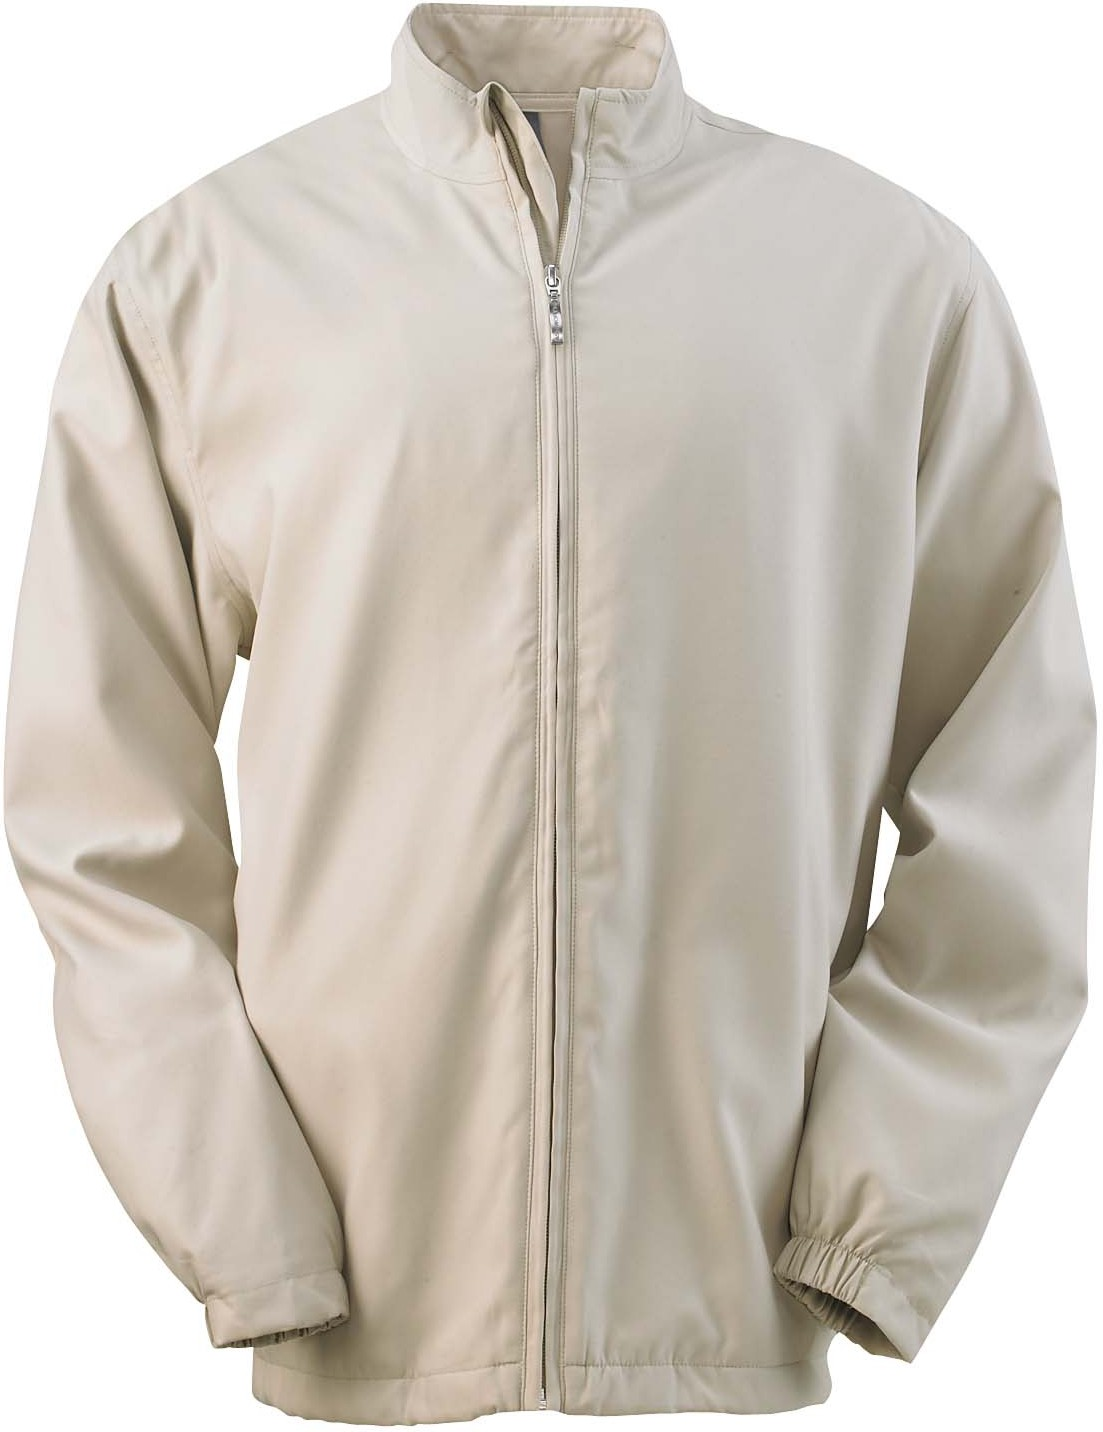 Ashworth Mens Golf Outerwear